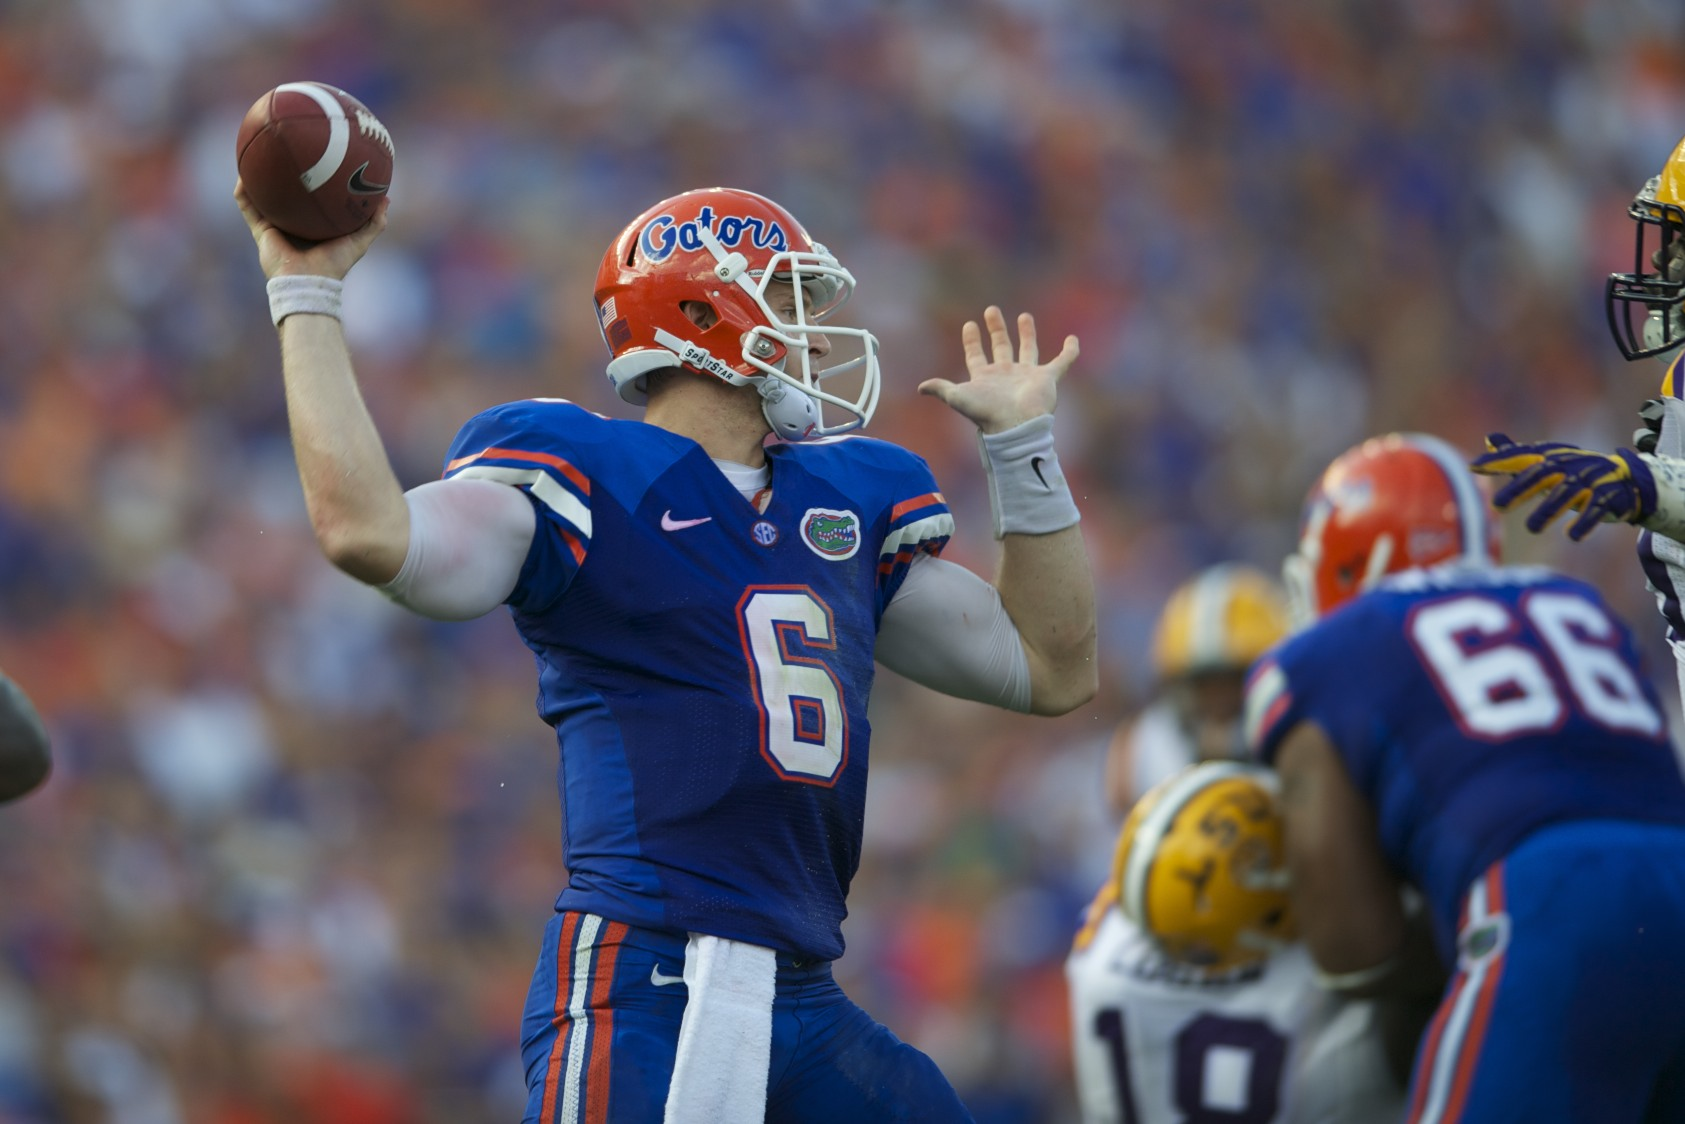 Florida quarterback Jeff Driskel